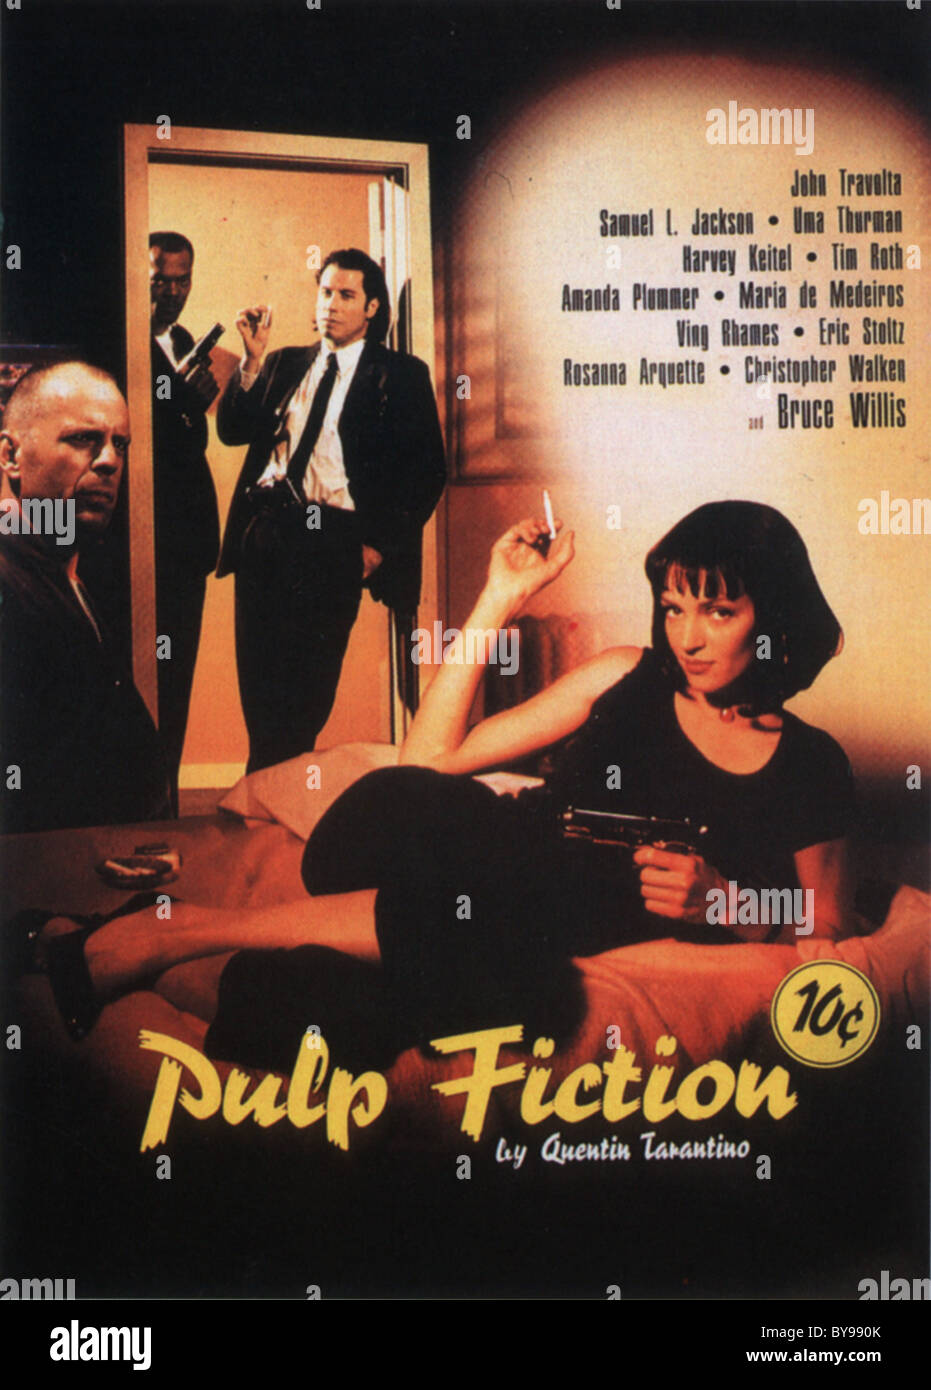 Pulp Fiction  Year : 1994 - USA Director : Quentin Tarantino Uma Thurman  Movie poster  (USA)  Golden Palm - Stock Image